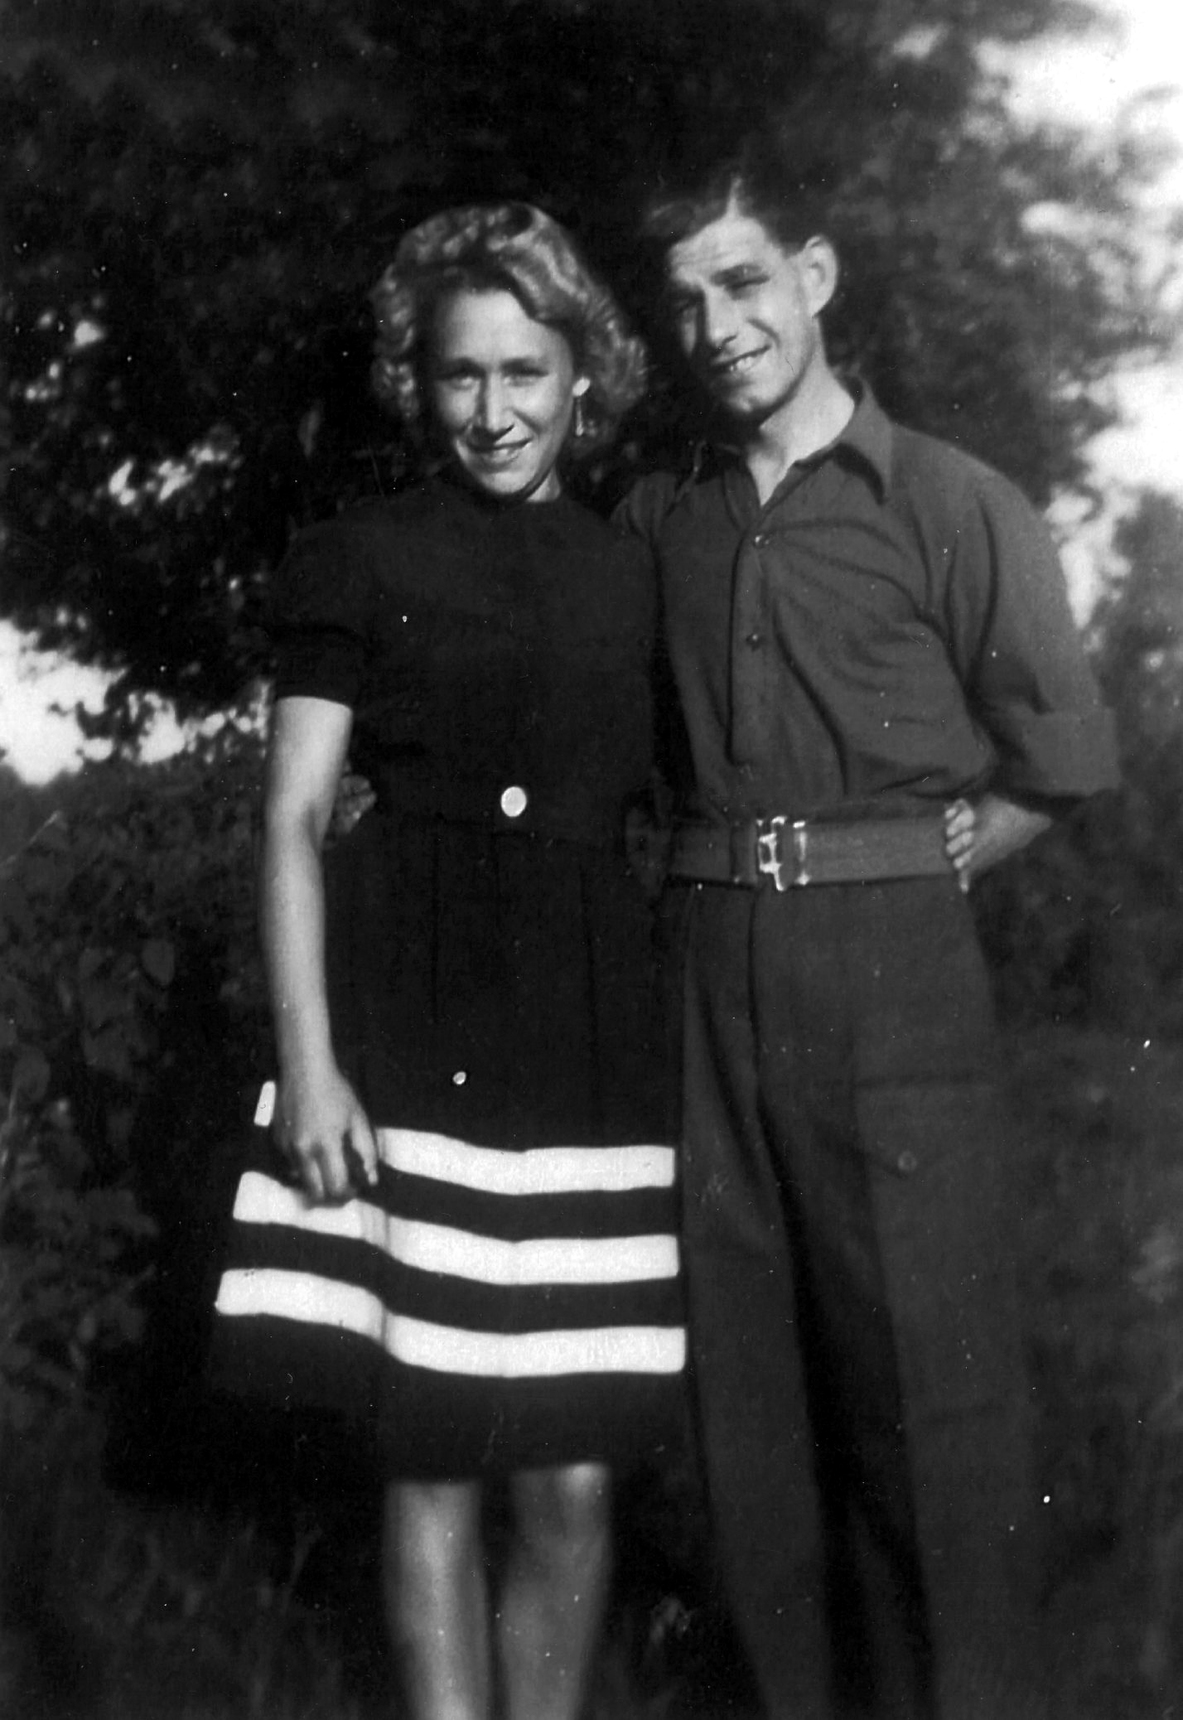 Peacetime Courting Couple, 6th July 1947